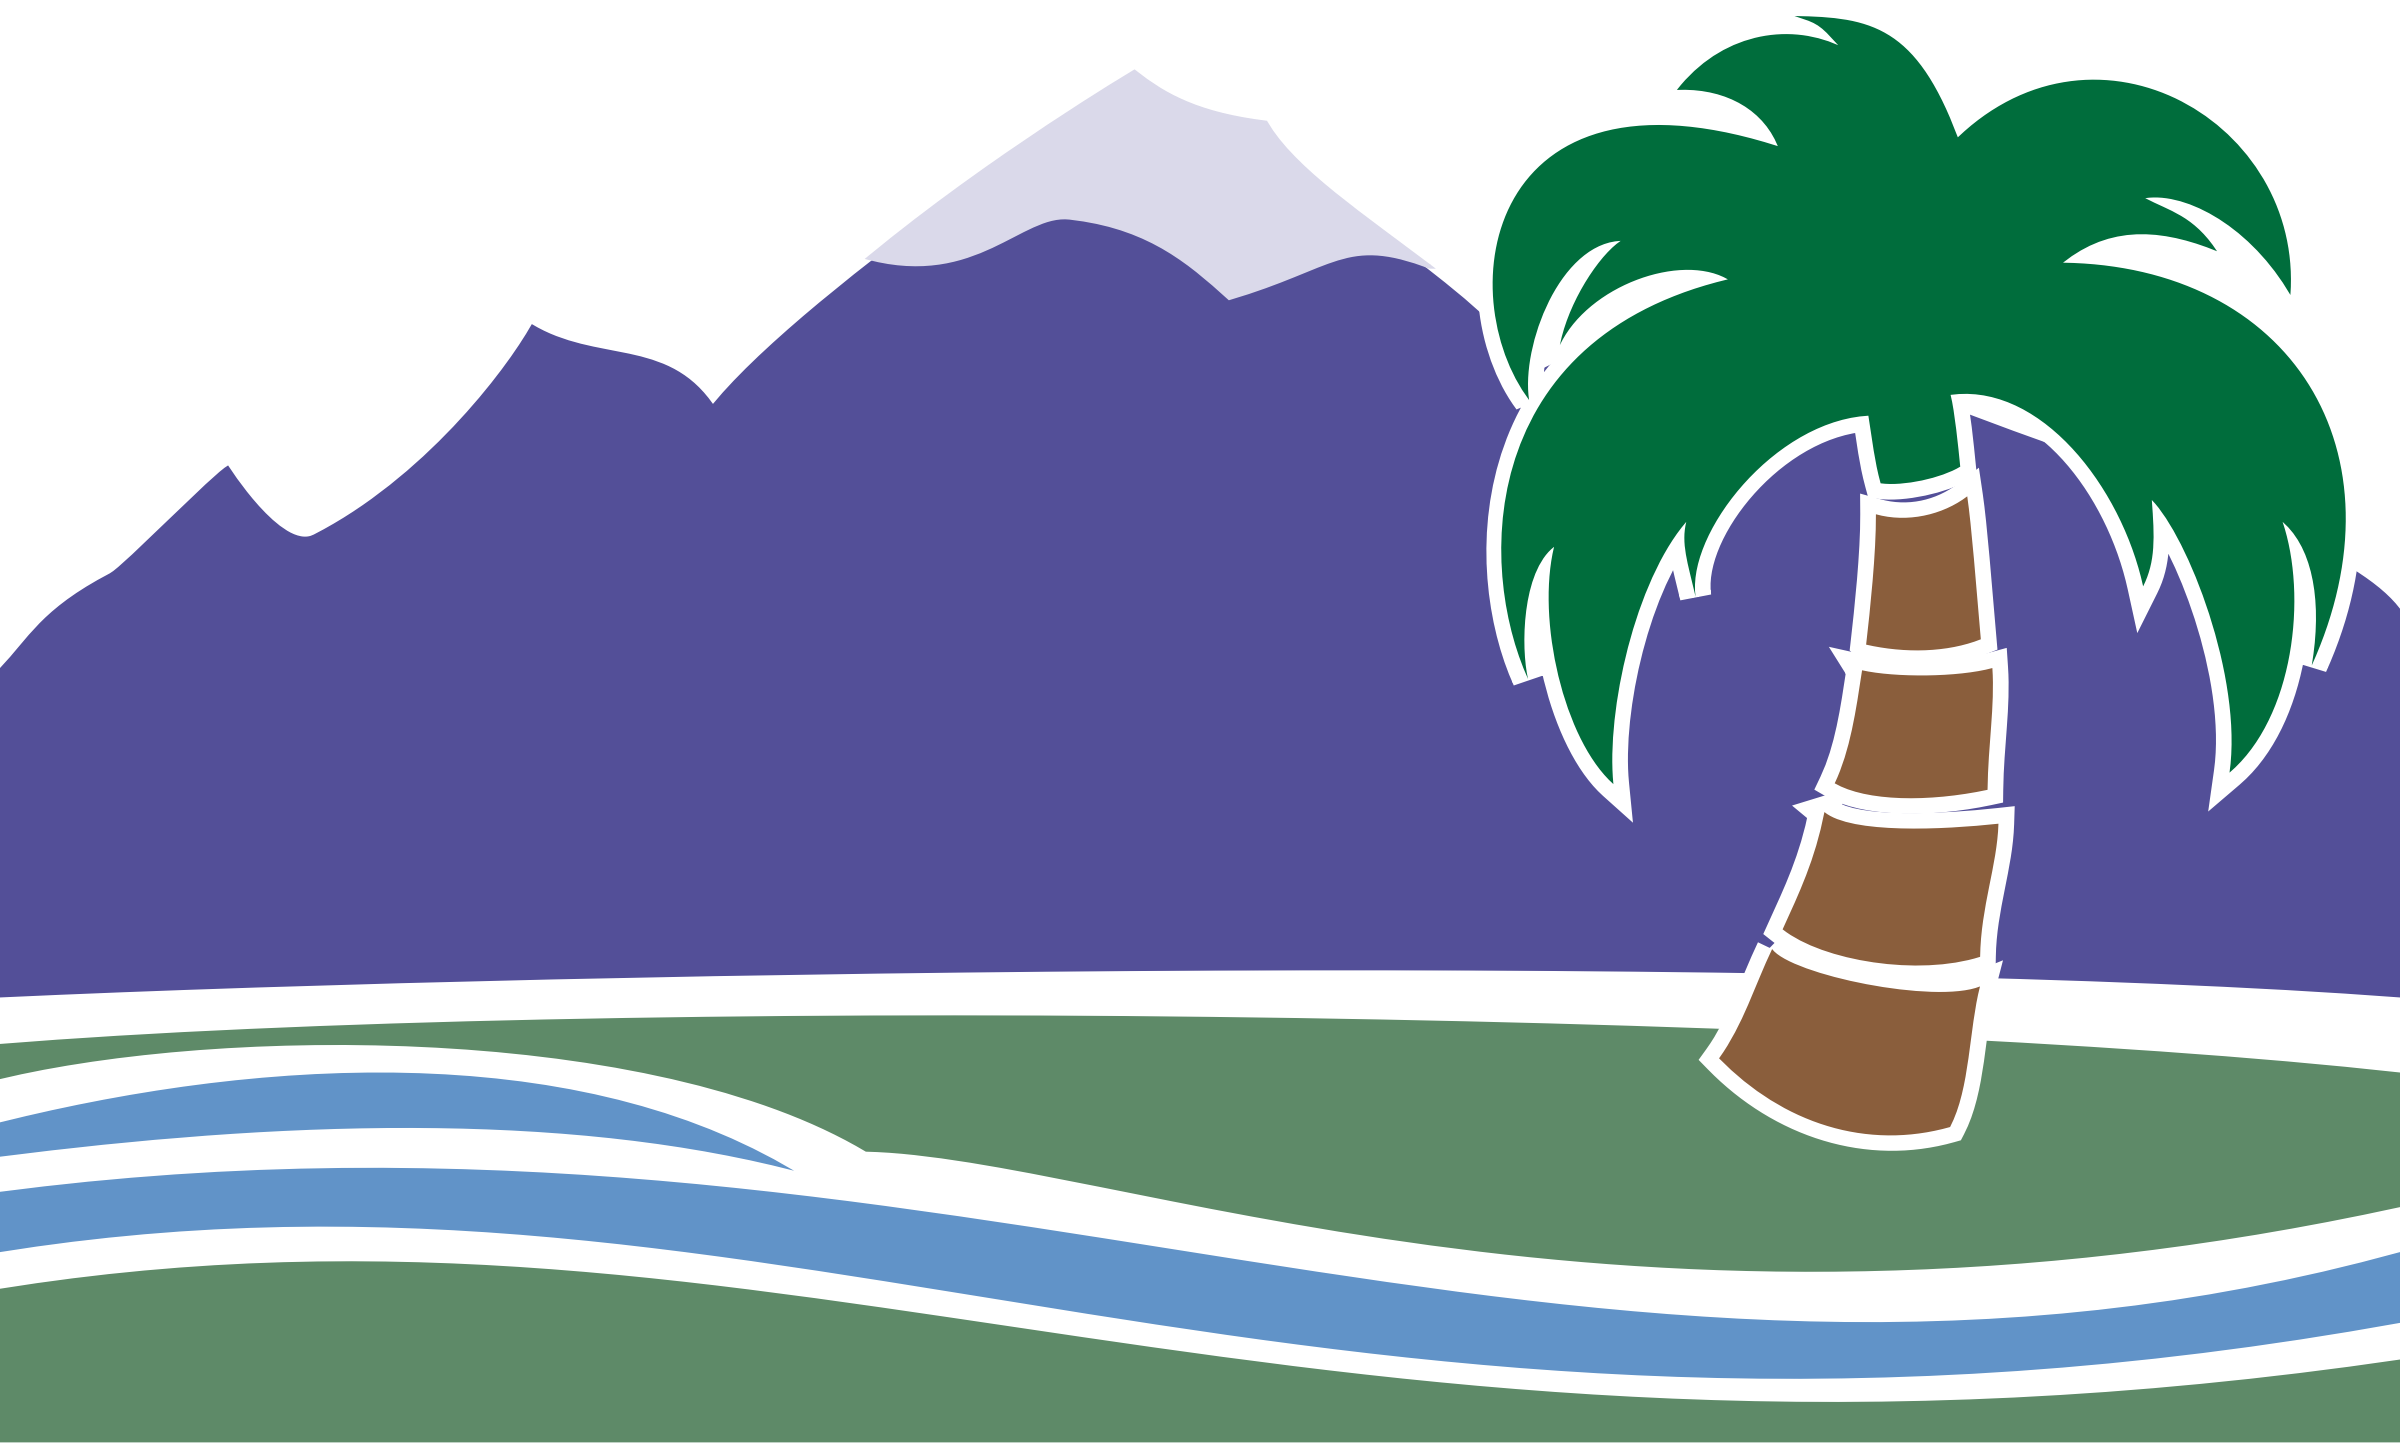 Arizona vector landscape. Desert clipart at getdrawings